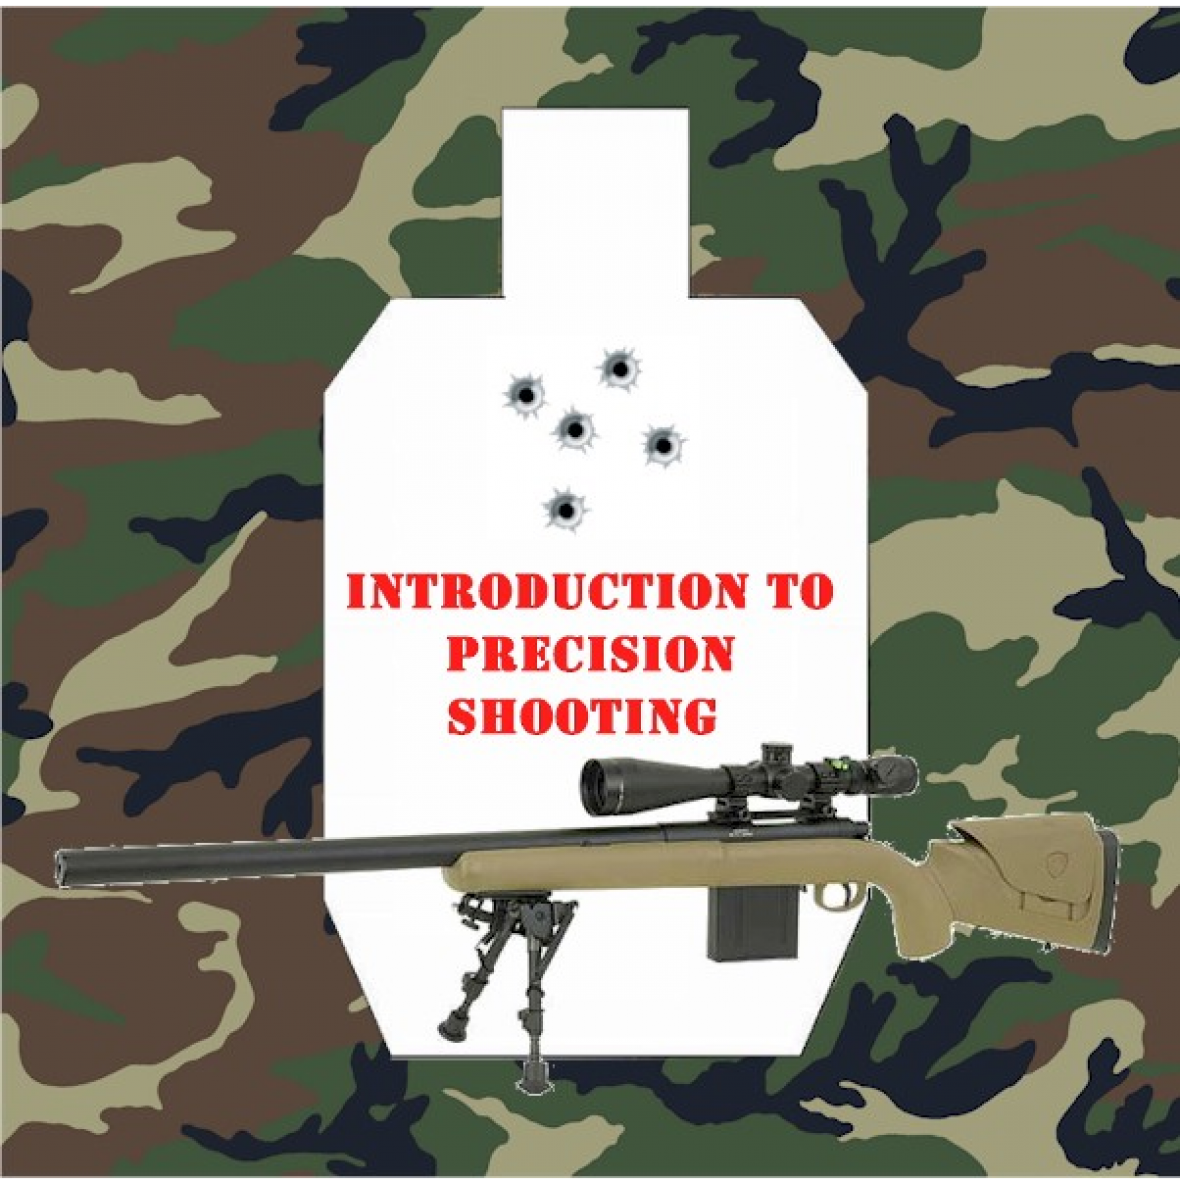 introduction to Precision Shooting